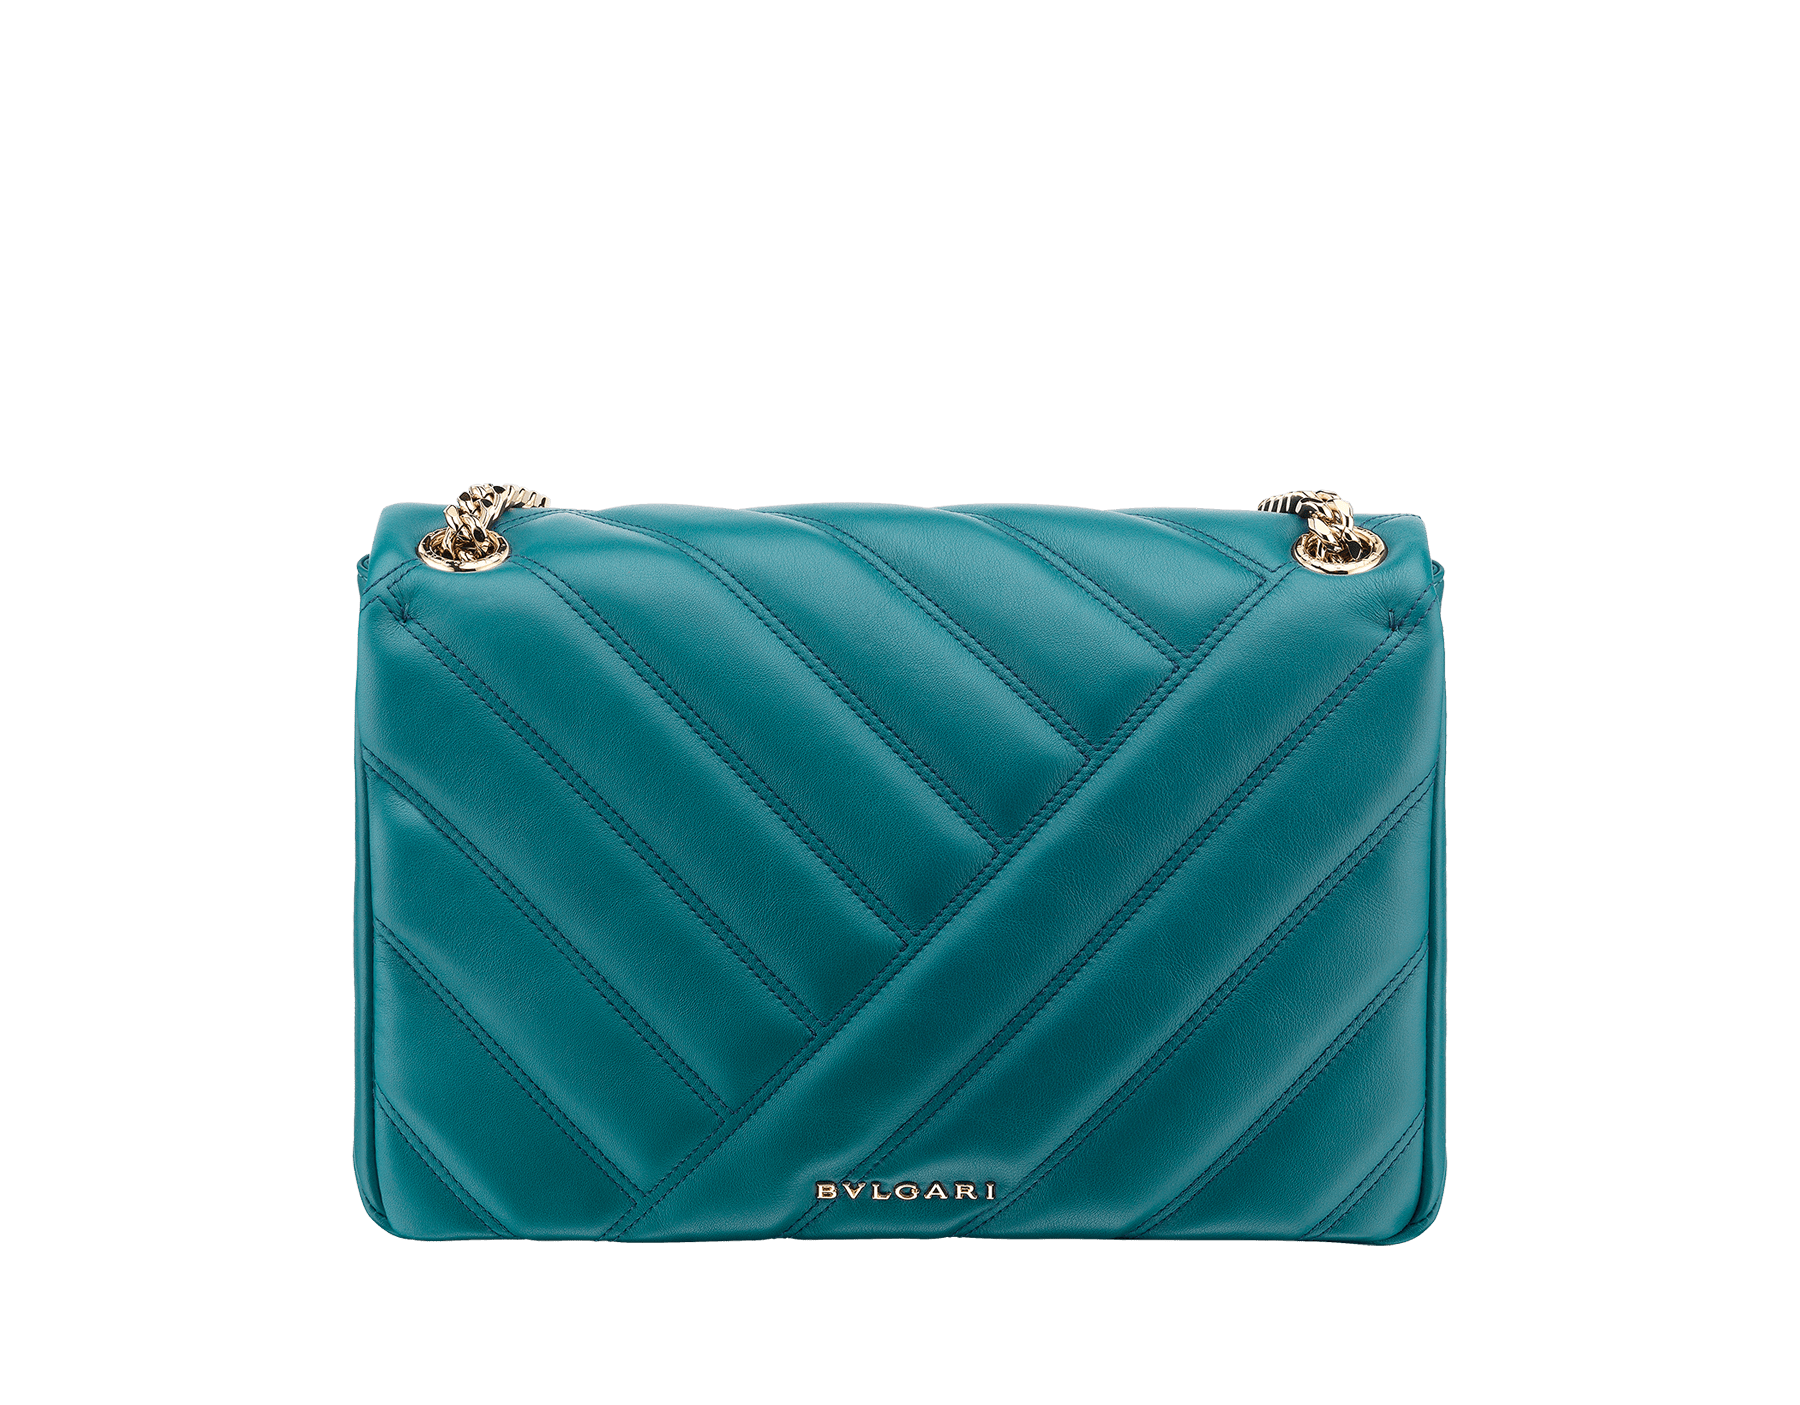 Serpenti Cabochon shoulder bag in soft matelassè deep jade nappa leather, with a graphic motif, and deep jade calf leather. Brass light gold plated tempting snake head closure in matte deep jade and shiny deep jade enamel, with black onyx eyes. 287984 image 3